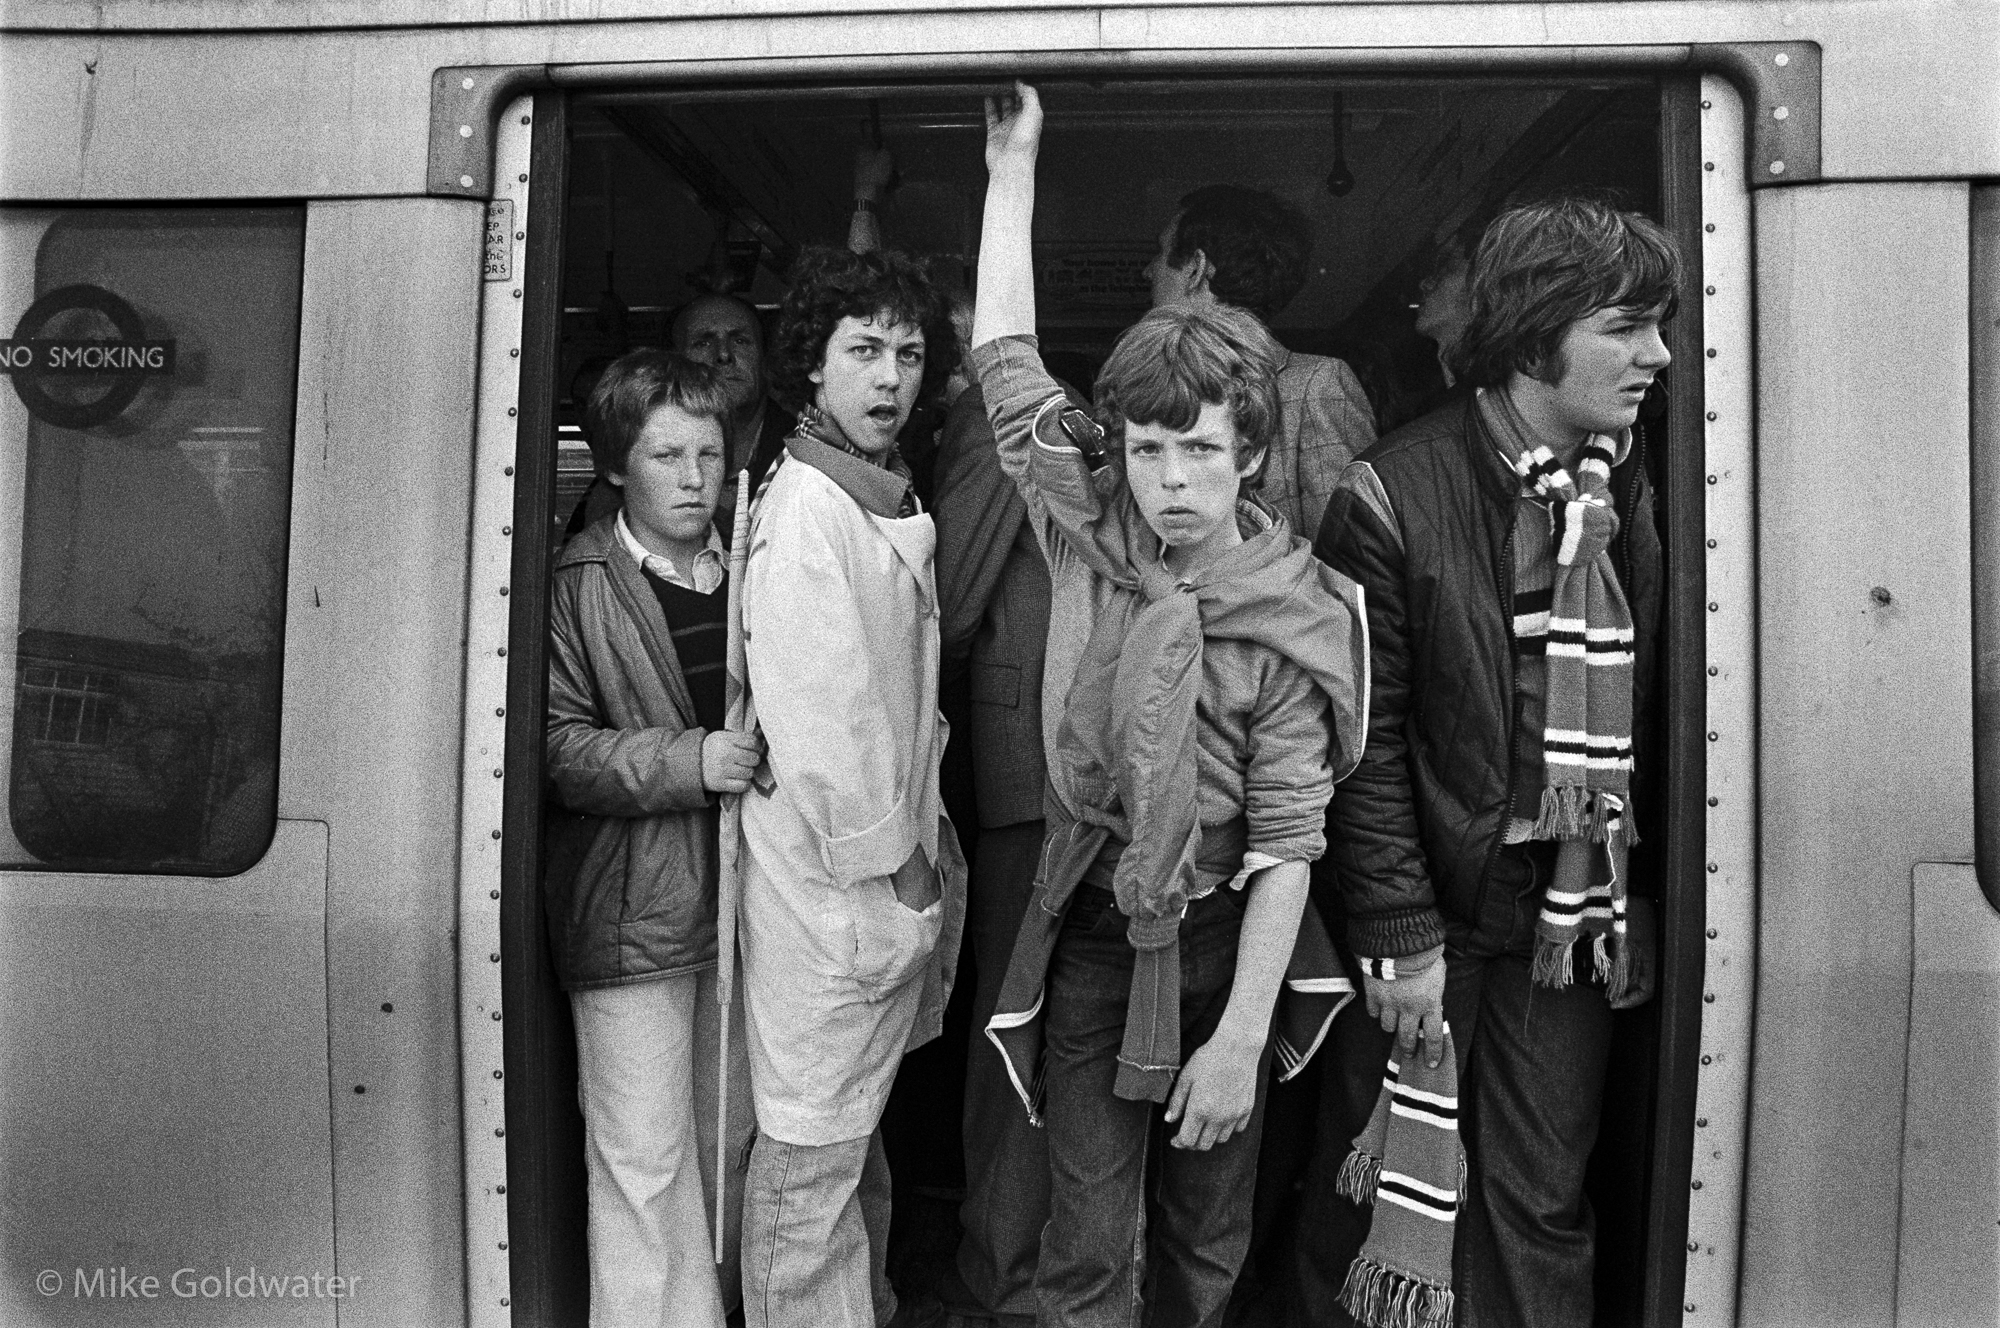 Boys in Tube doorway (Pic: Mike Goldwater)